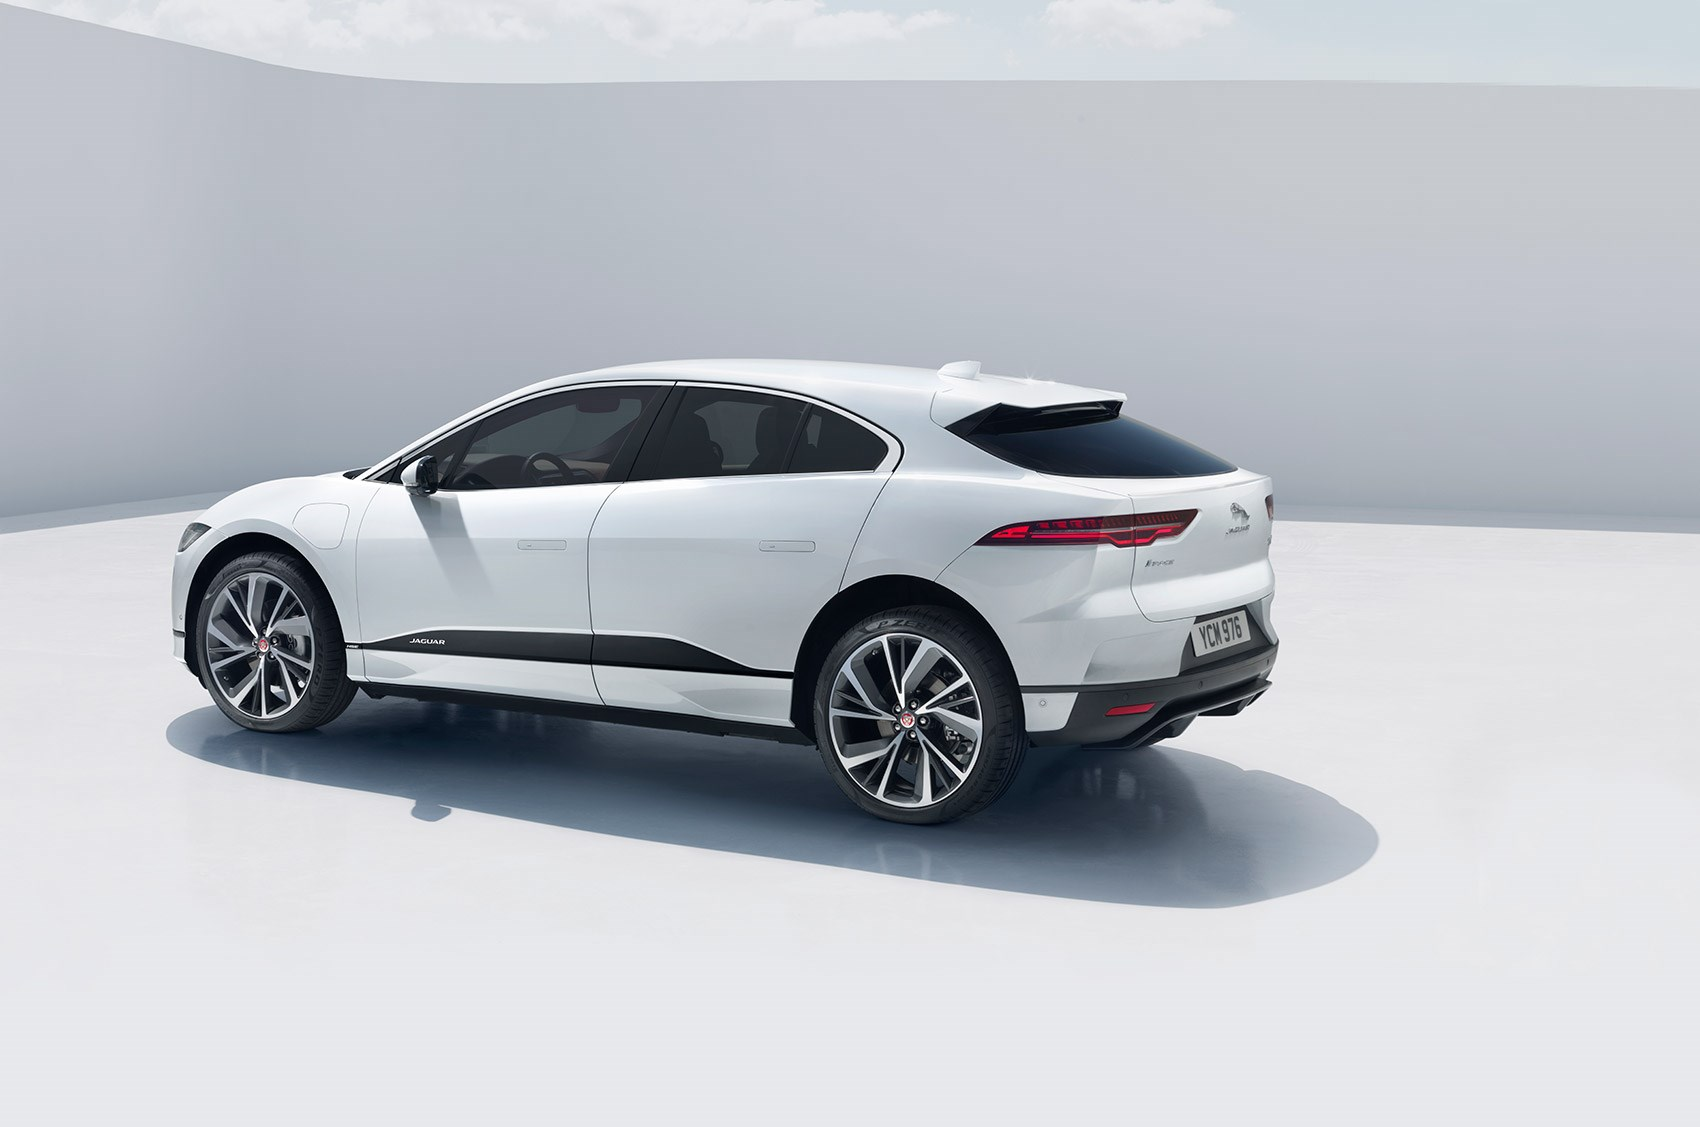 Jaguar I Pace Electric Suv News Specs Prices Uk On Sale Dates